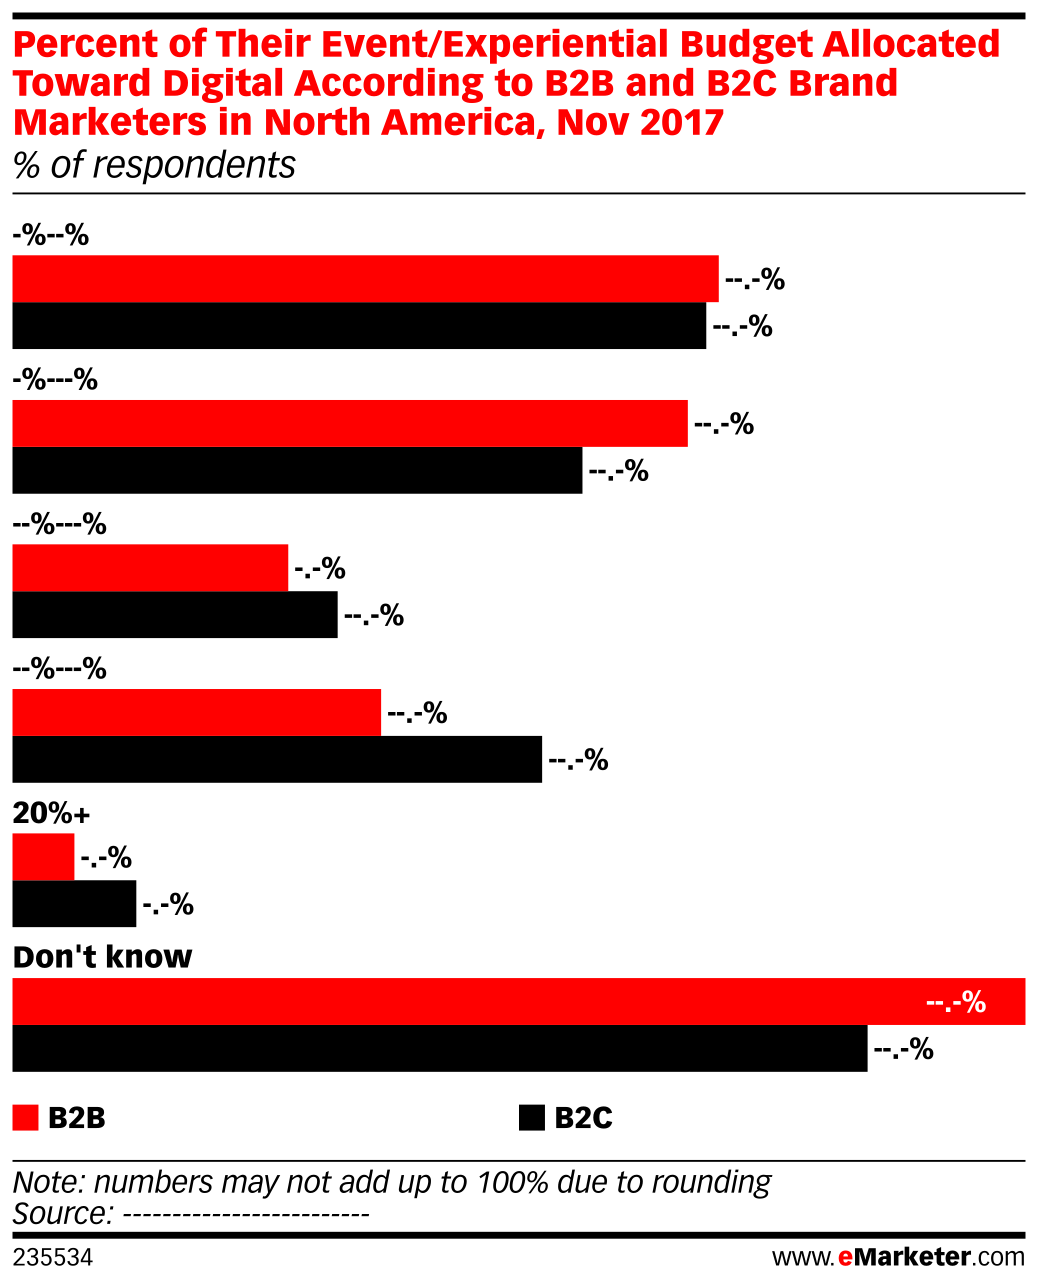 Percent of Their Event/Experiential Budget Allocated Toward Digital According to B2B and B2C Brand Marketers in North America, Nov 2017 (% of respondents)